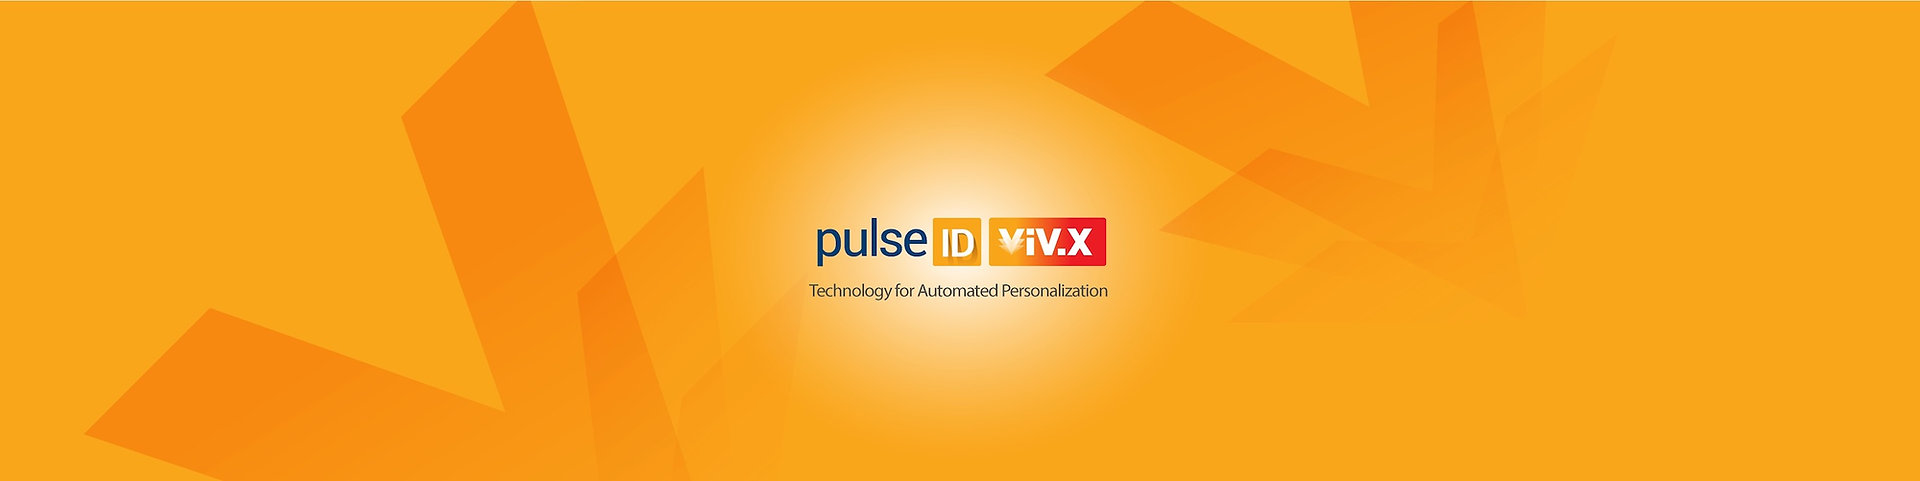 PulseID ViV.X Technology for Automated Personalization